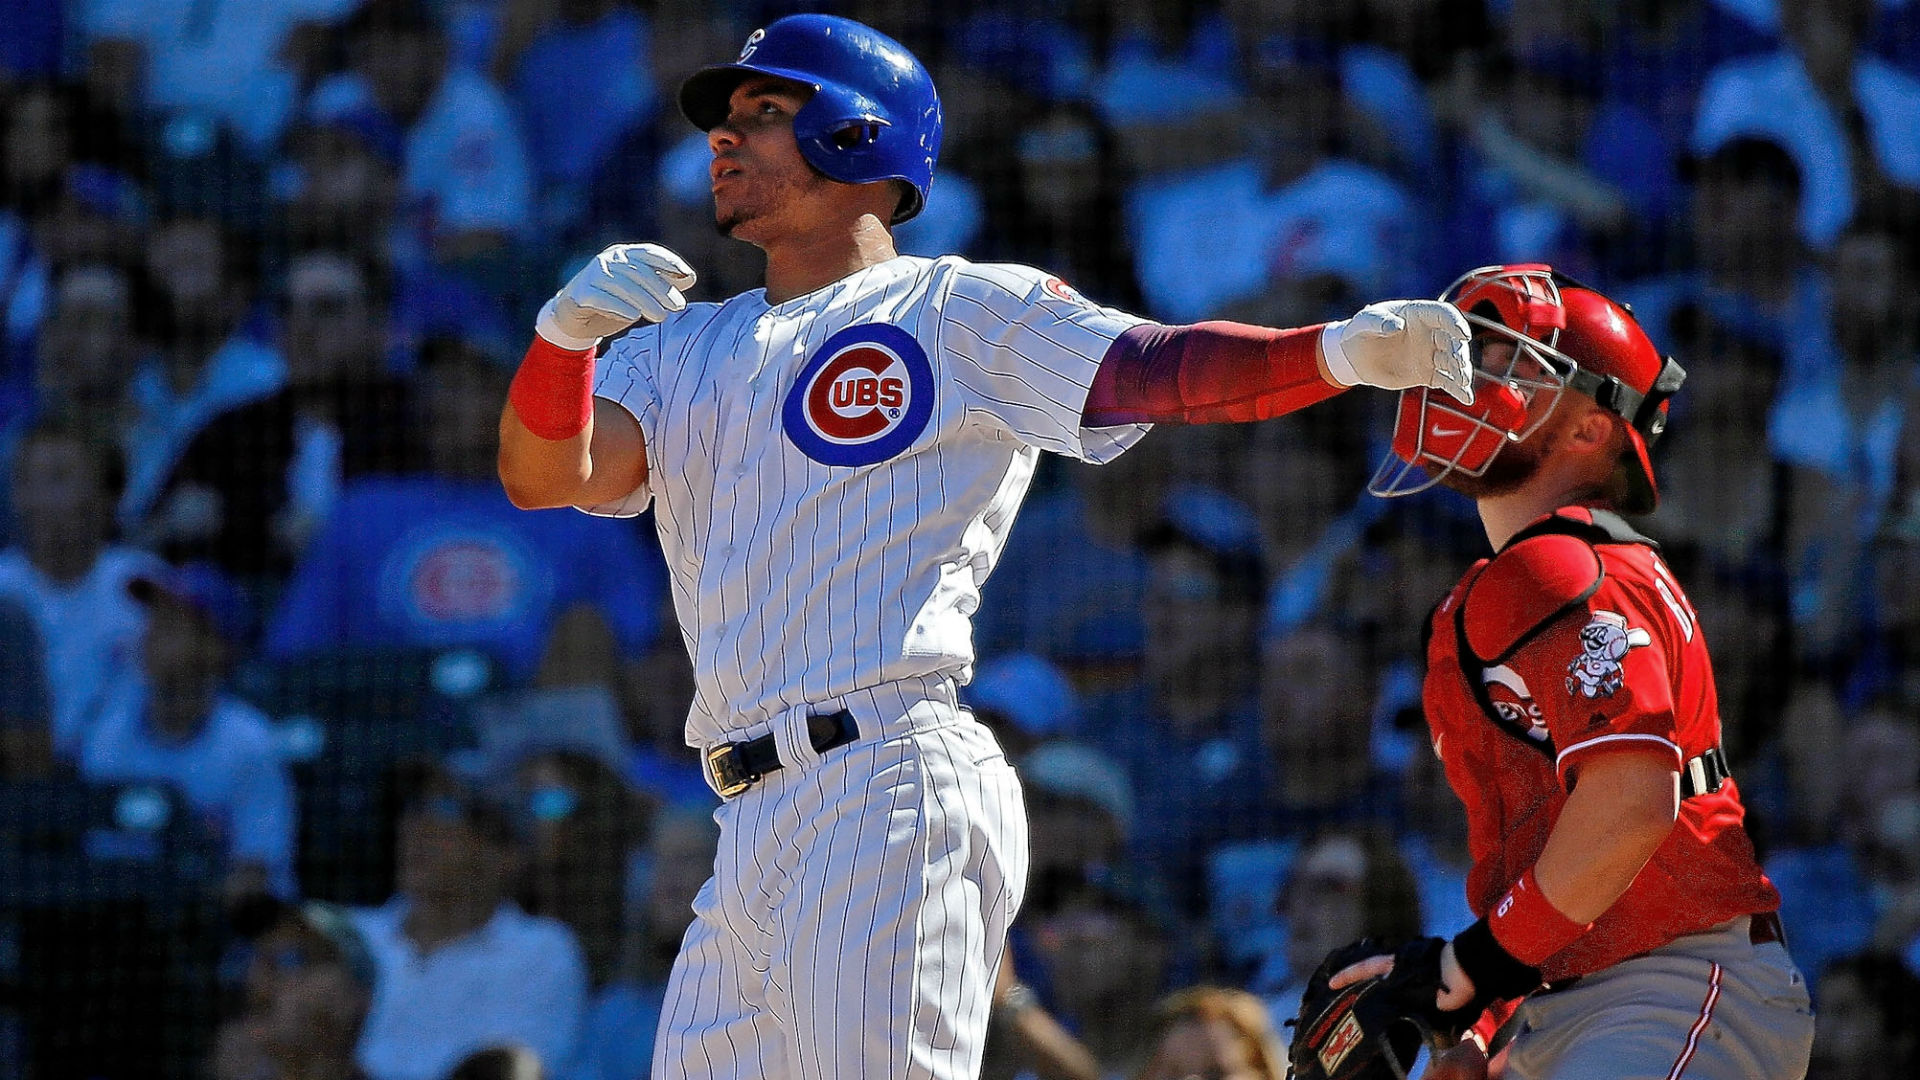 Willson Contreras injury update: Cubs catcher placed on IL as 'precautionary' move